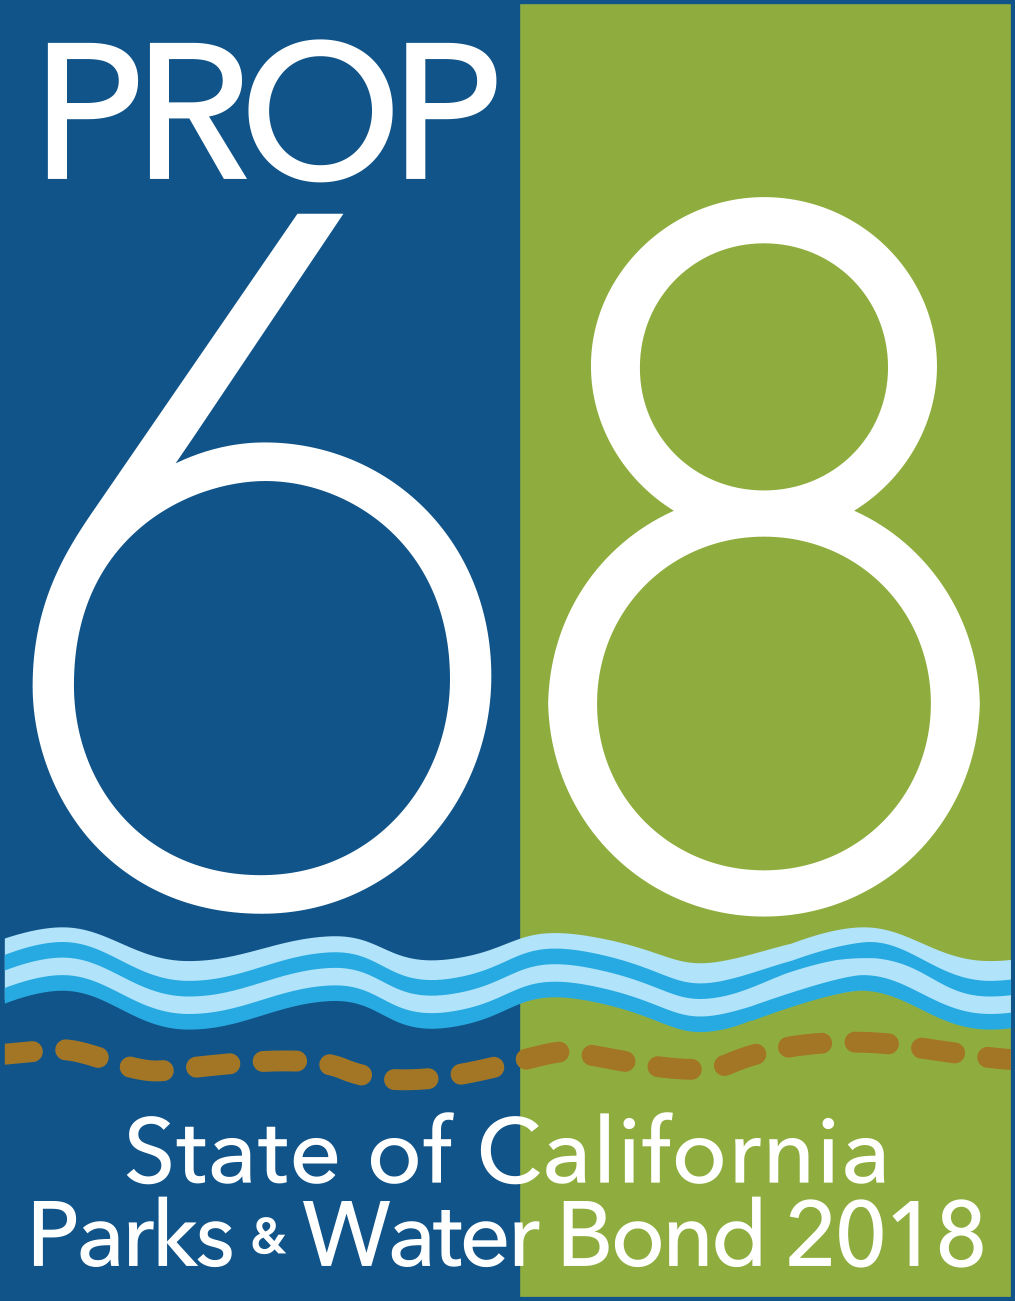 Prop 68 logo. Reads: Prop 68, State of California Parks & Water Bond 2018. Depicts blue and green rectangles with a river and trail.